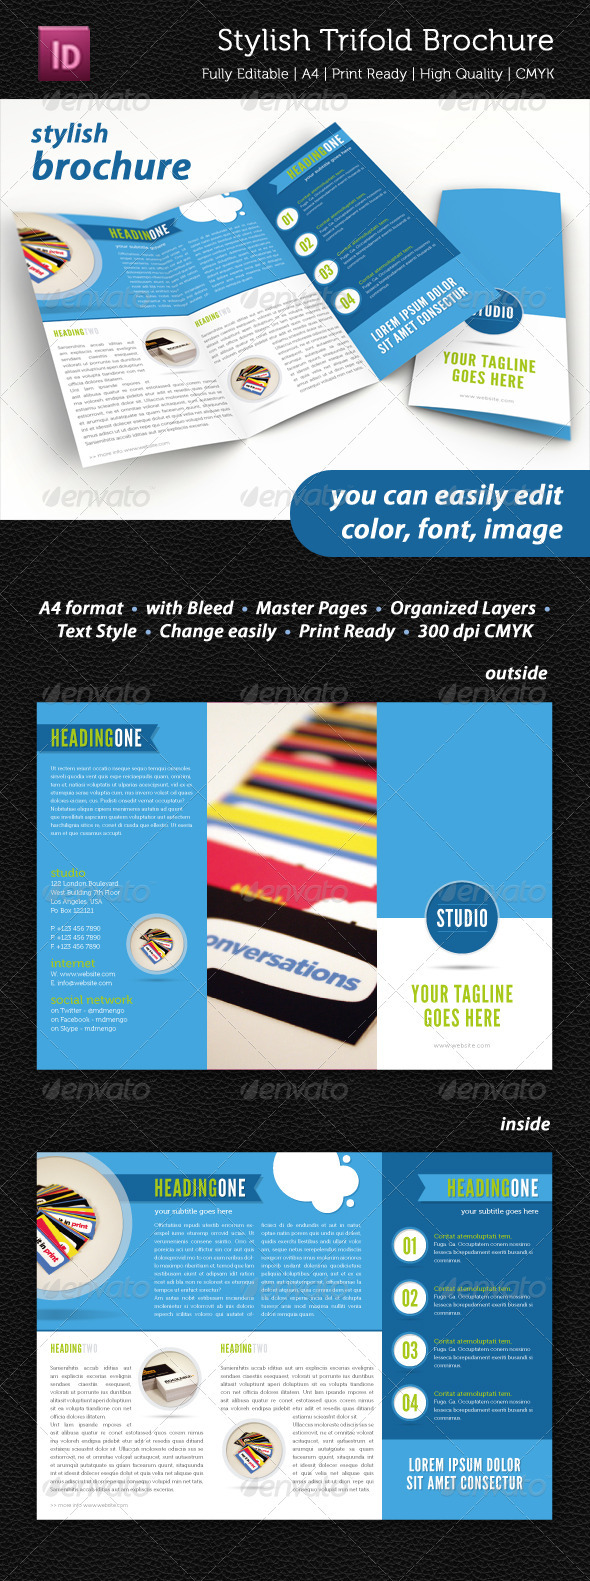 GraphicRiver Stylish Trifold Brochure 2346619